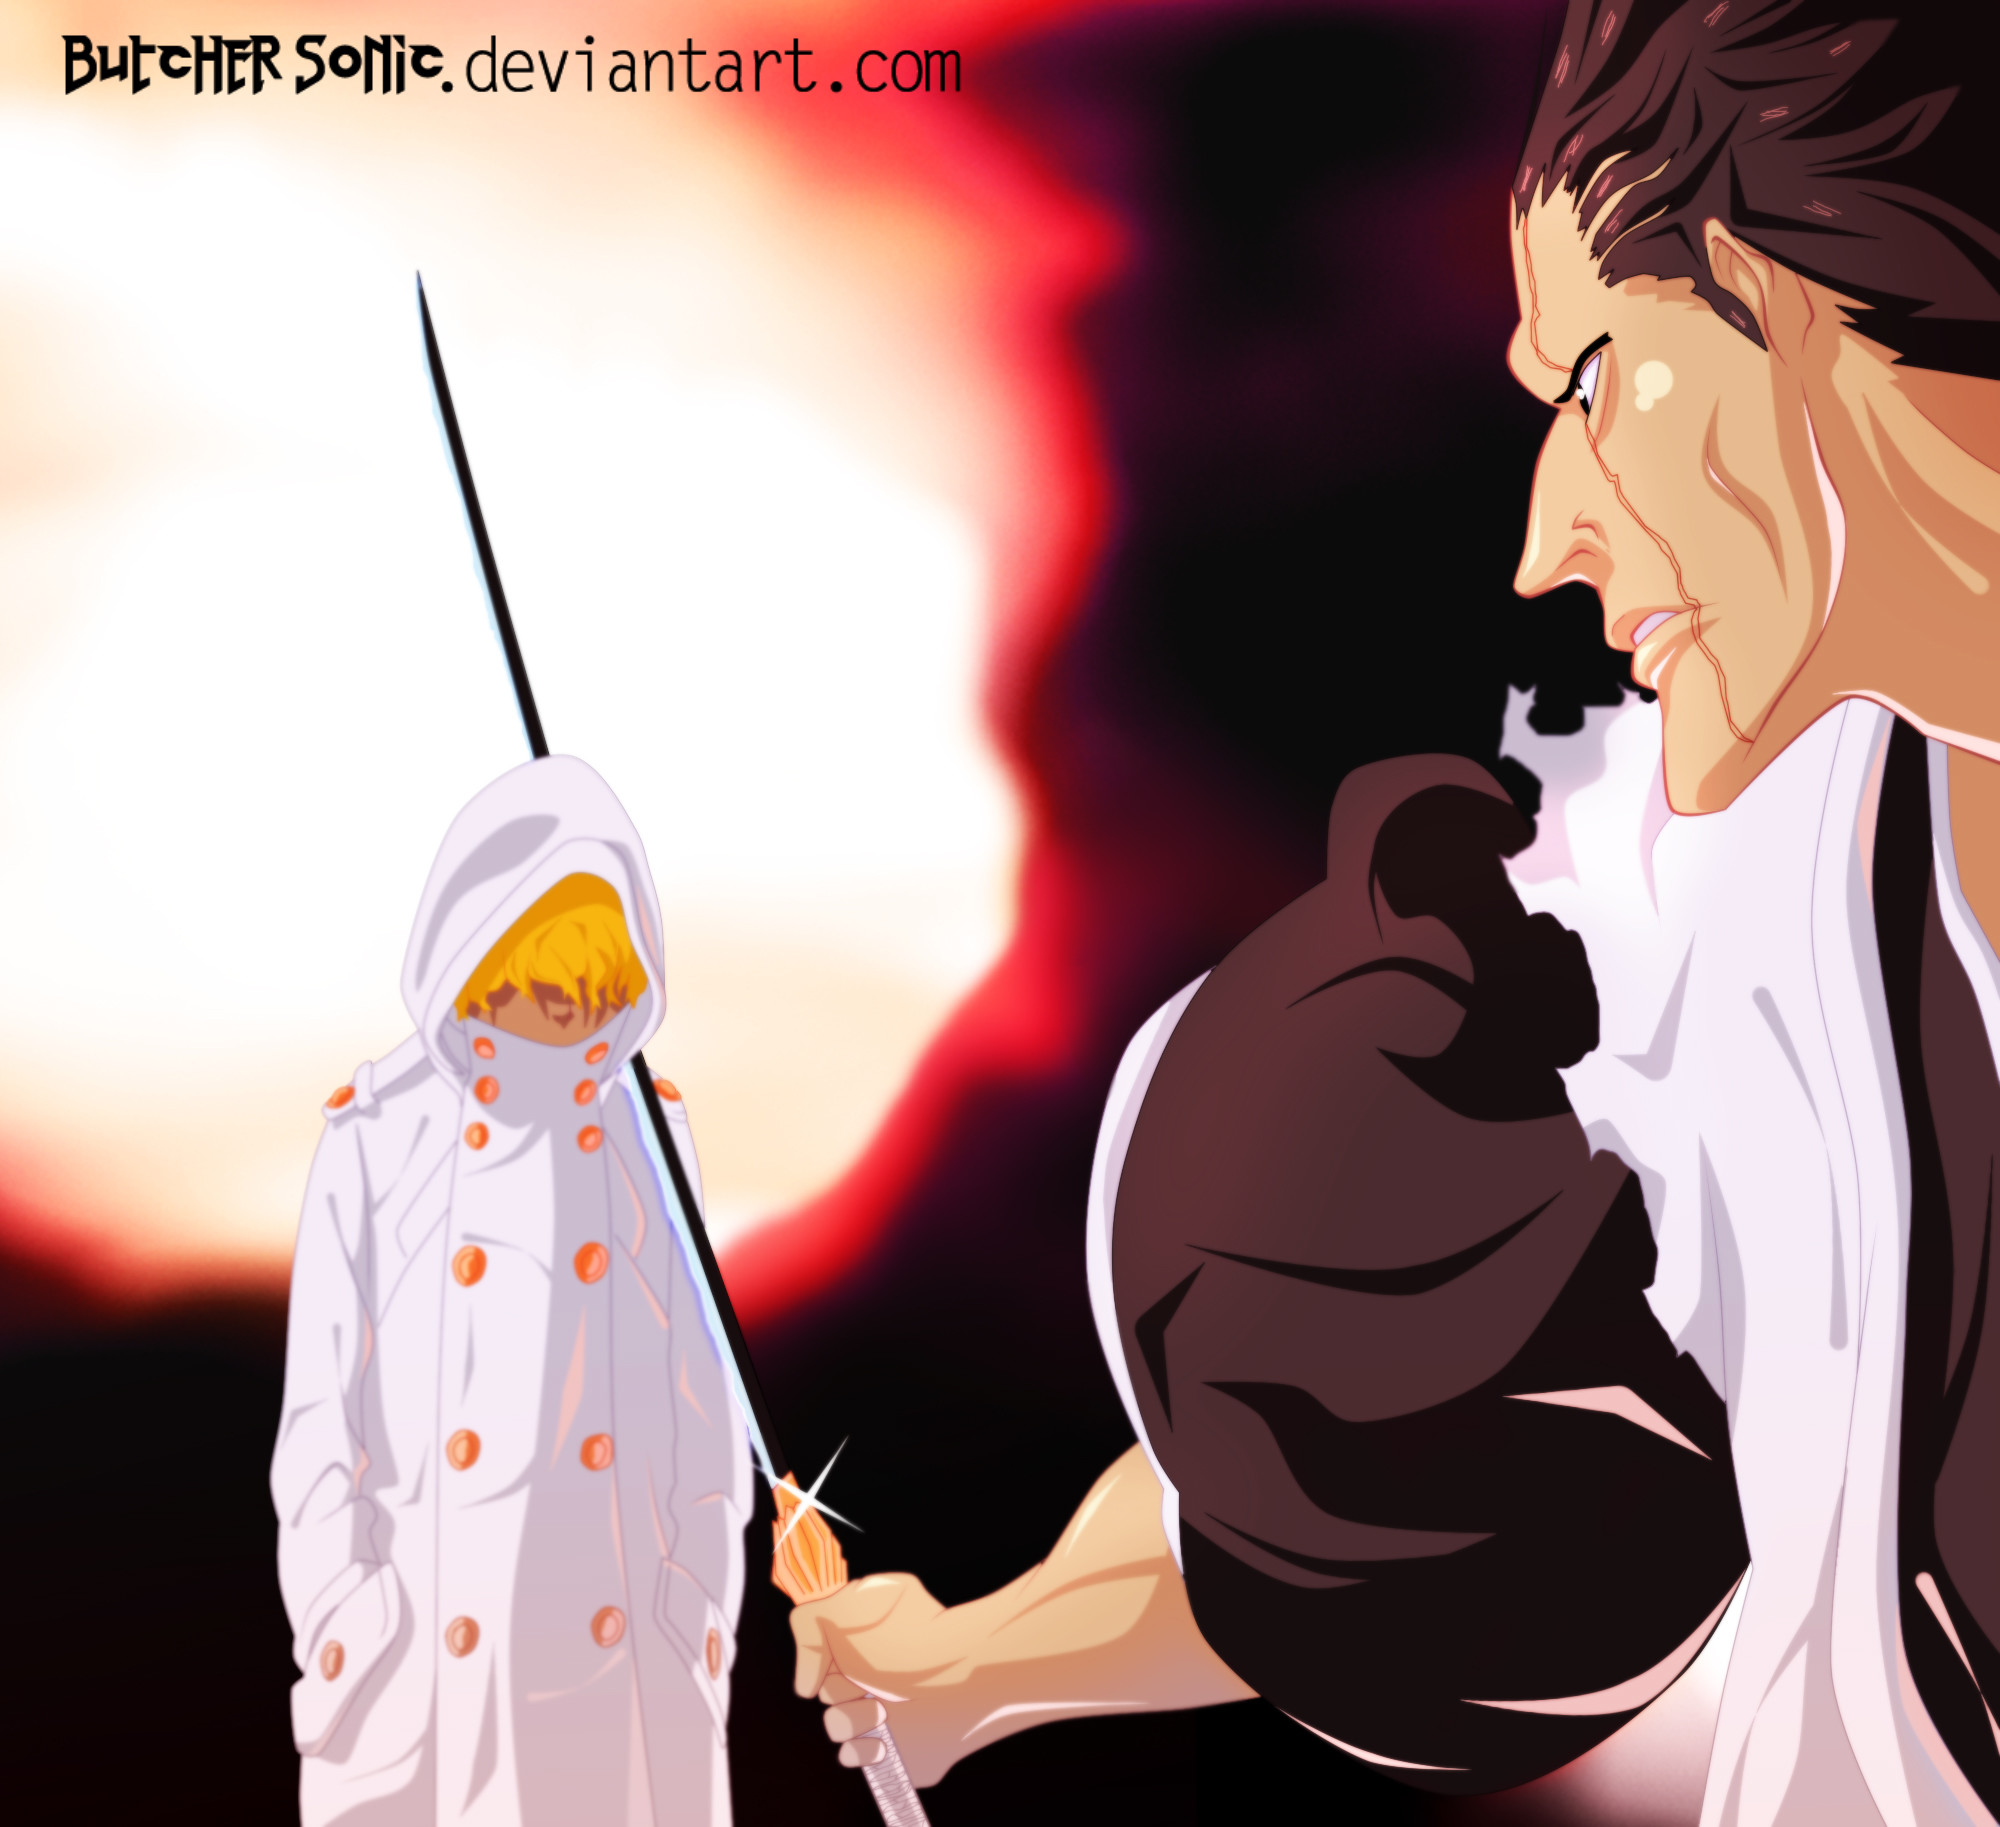 2000x1827 Bleach 573 p13 Zaraki by ButcherSonic